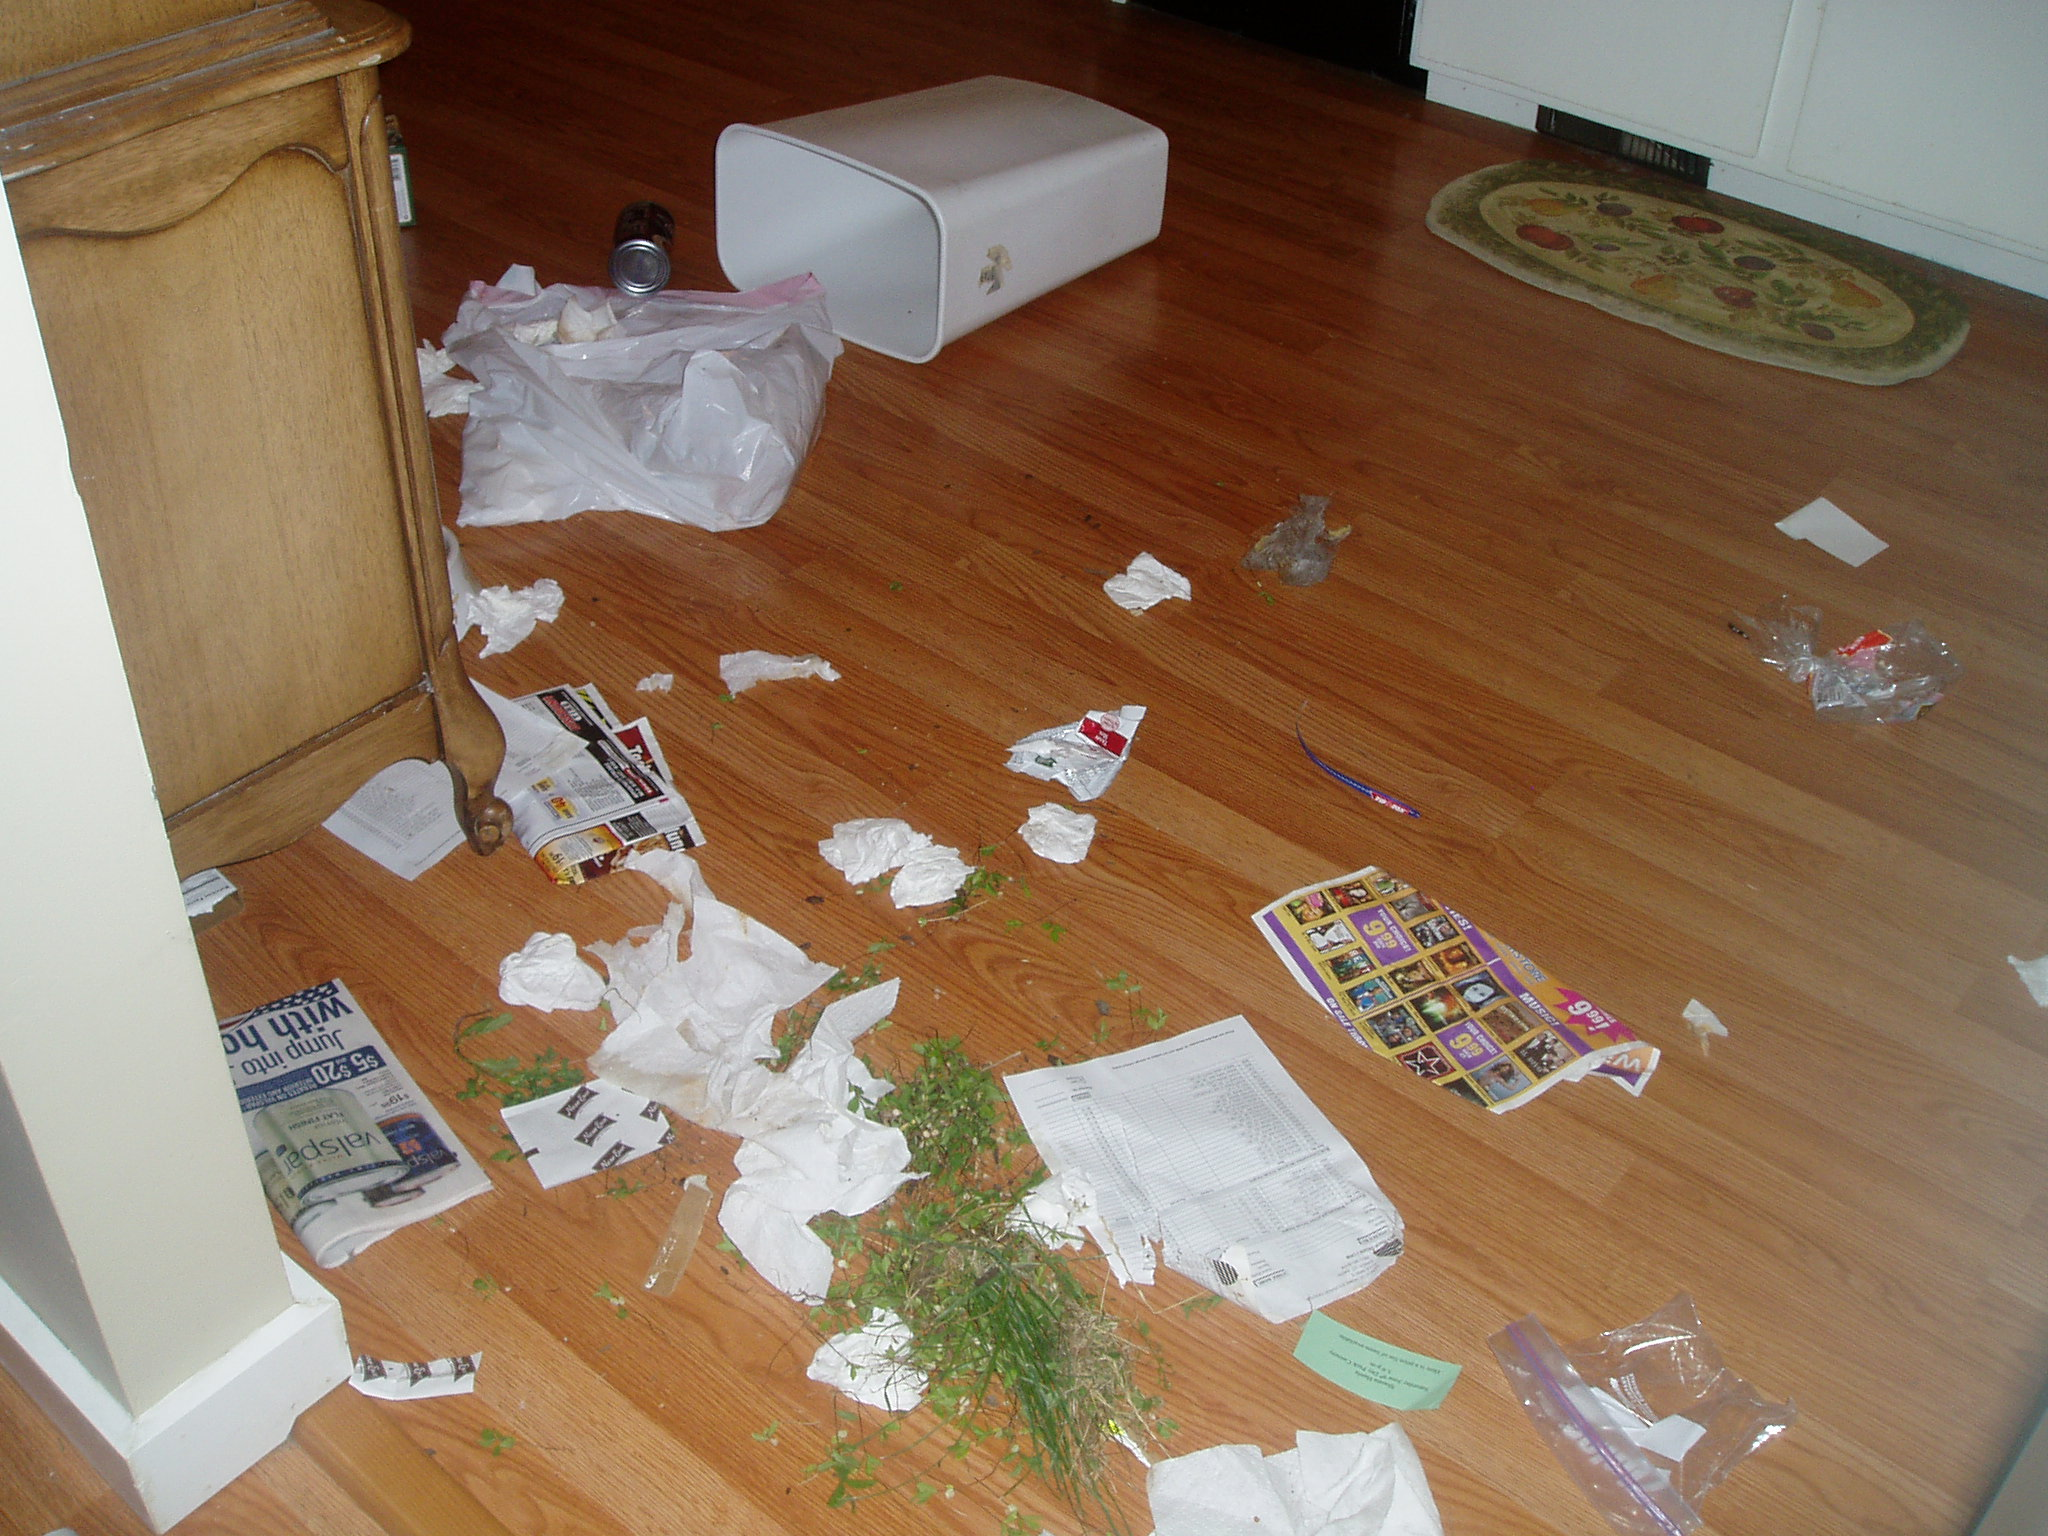 The destruction of Annabelle in the garbage can.